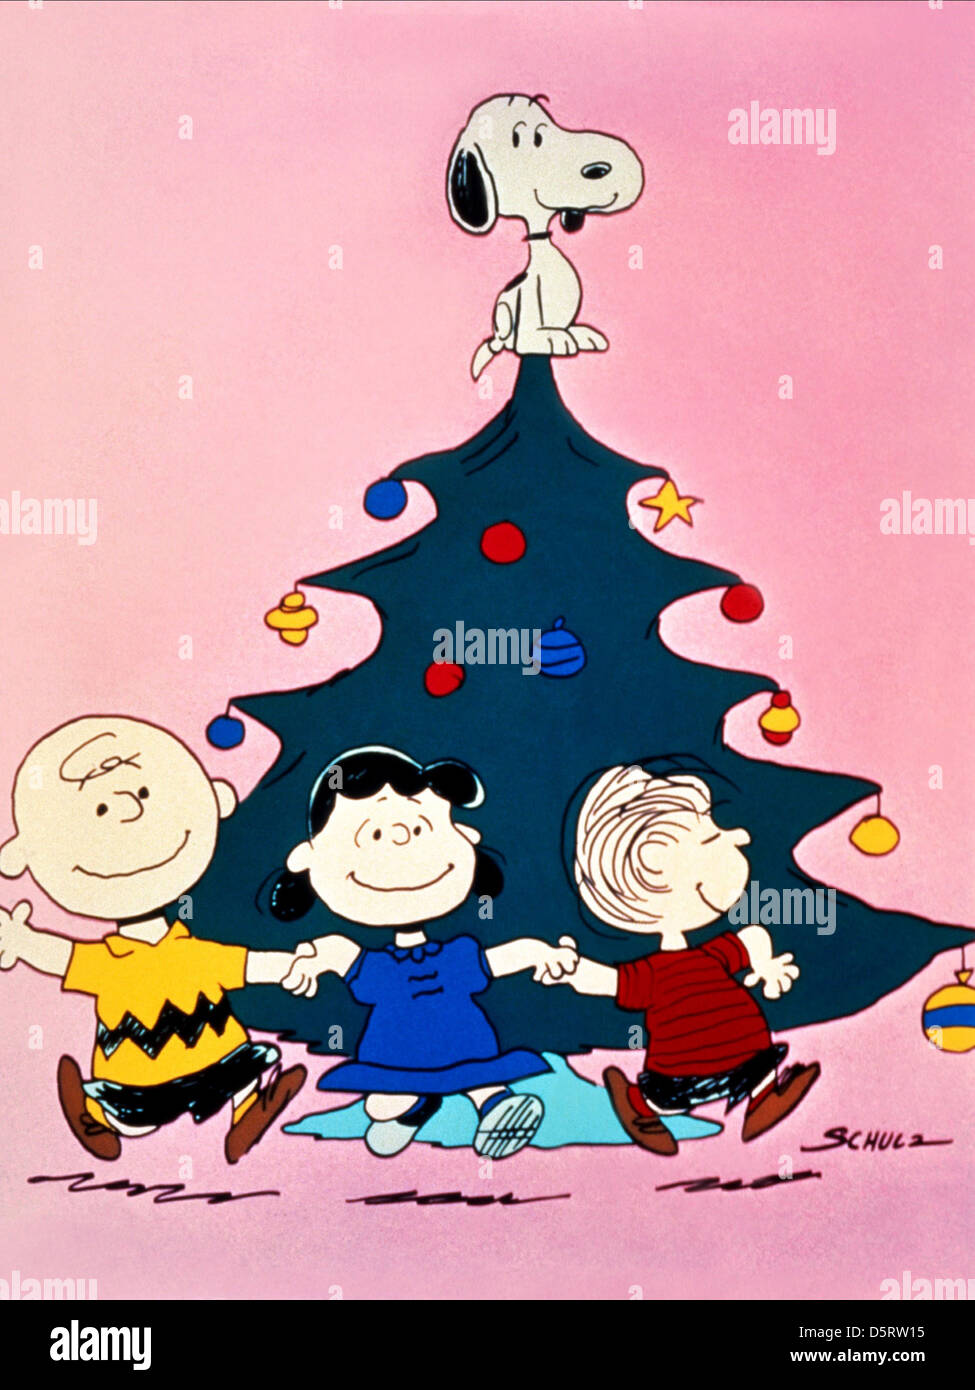 Charlie brown lucy linus snoopy ein charlie brown - Charlie brown bilder ...